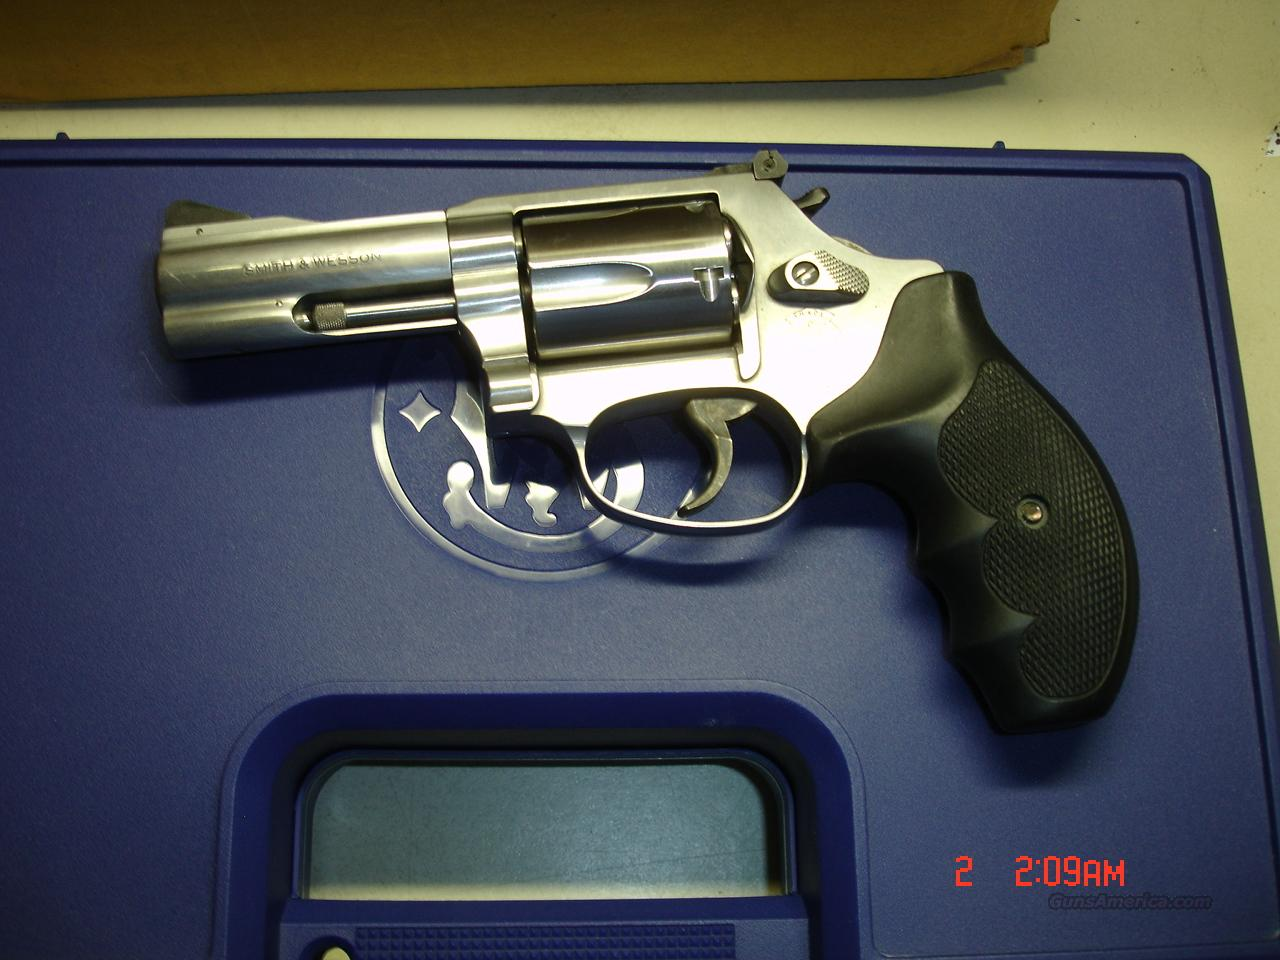 S&W 60-10  Guns > Pistols > Smith & Wesson Revolvers > Pocket Pistols